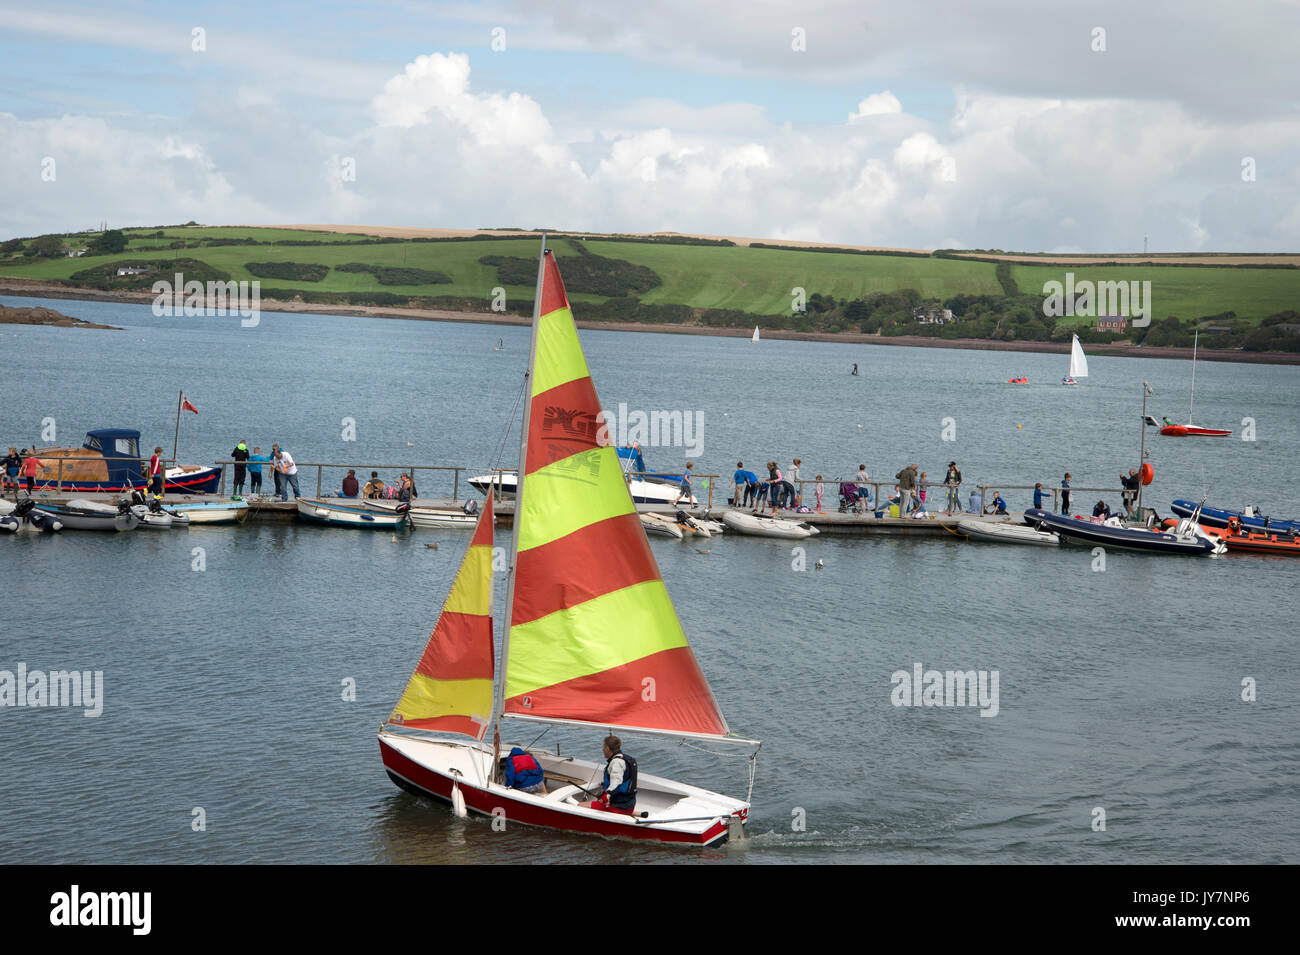 Dale, West Wales. Small dingy with stripes sails in the harbour. - Stock Image